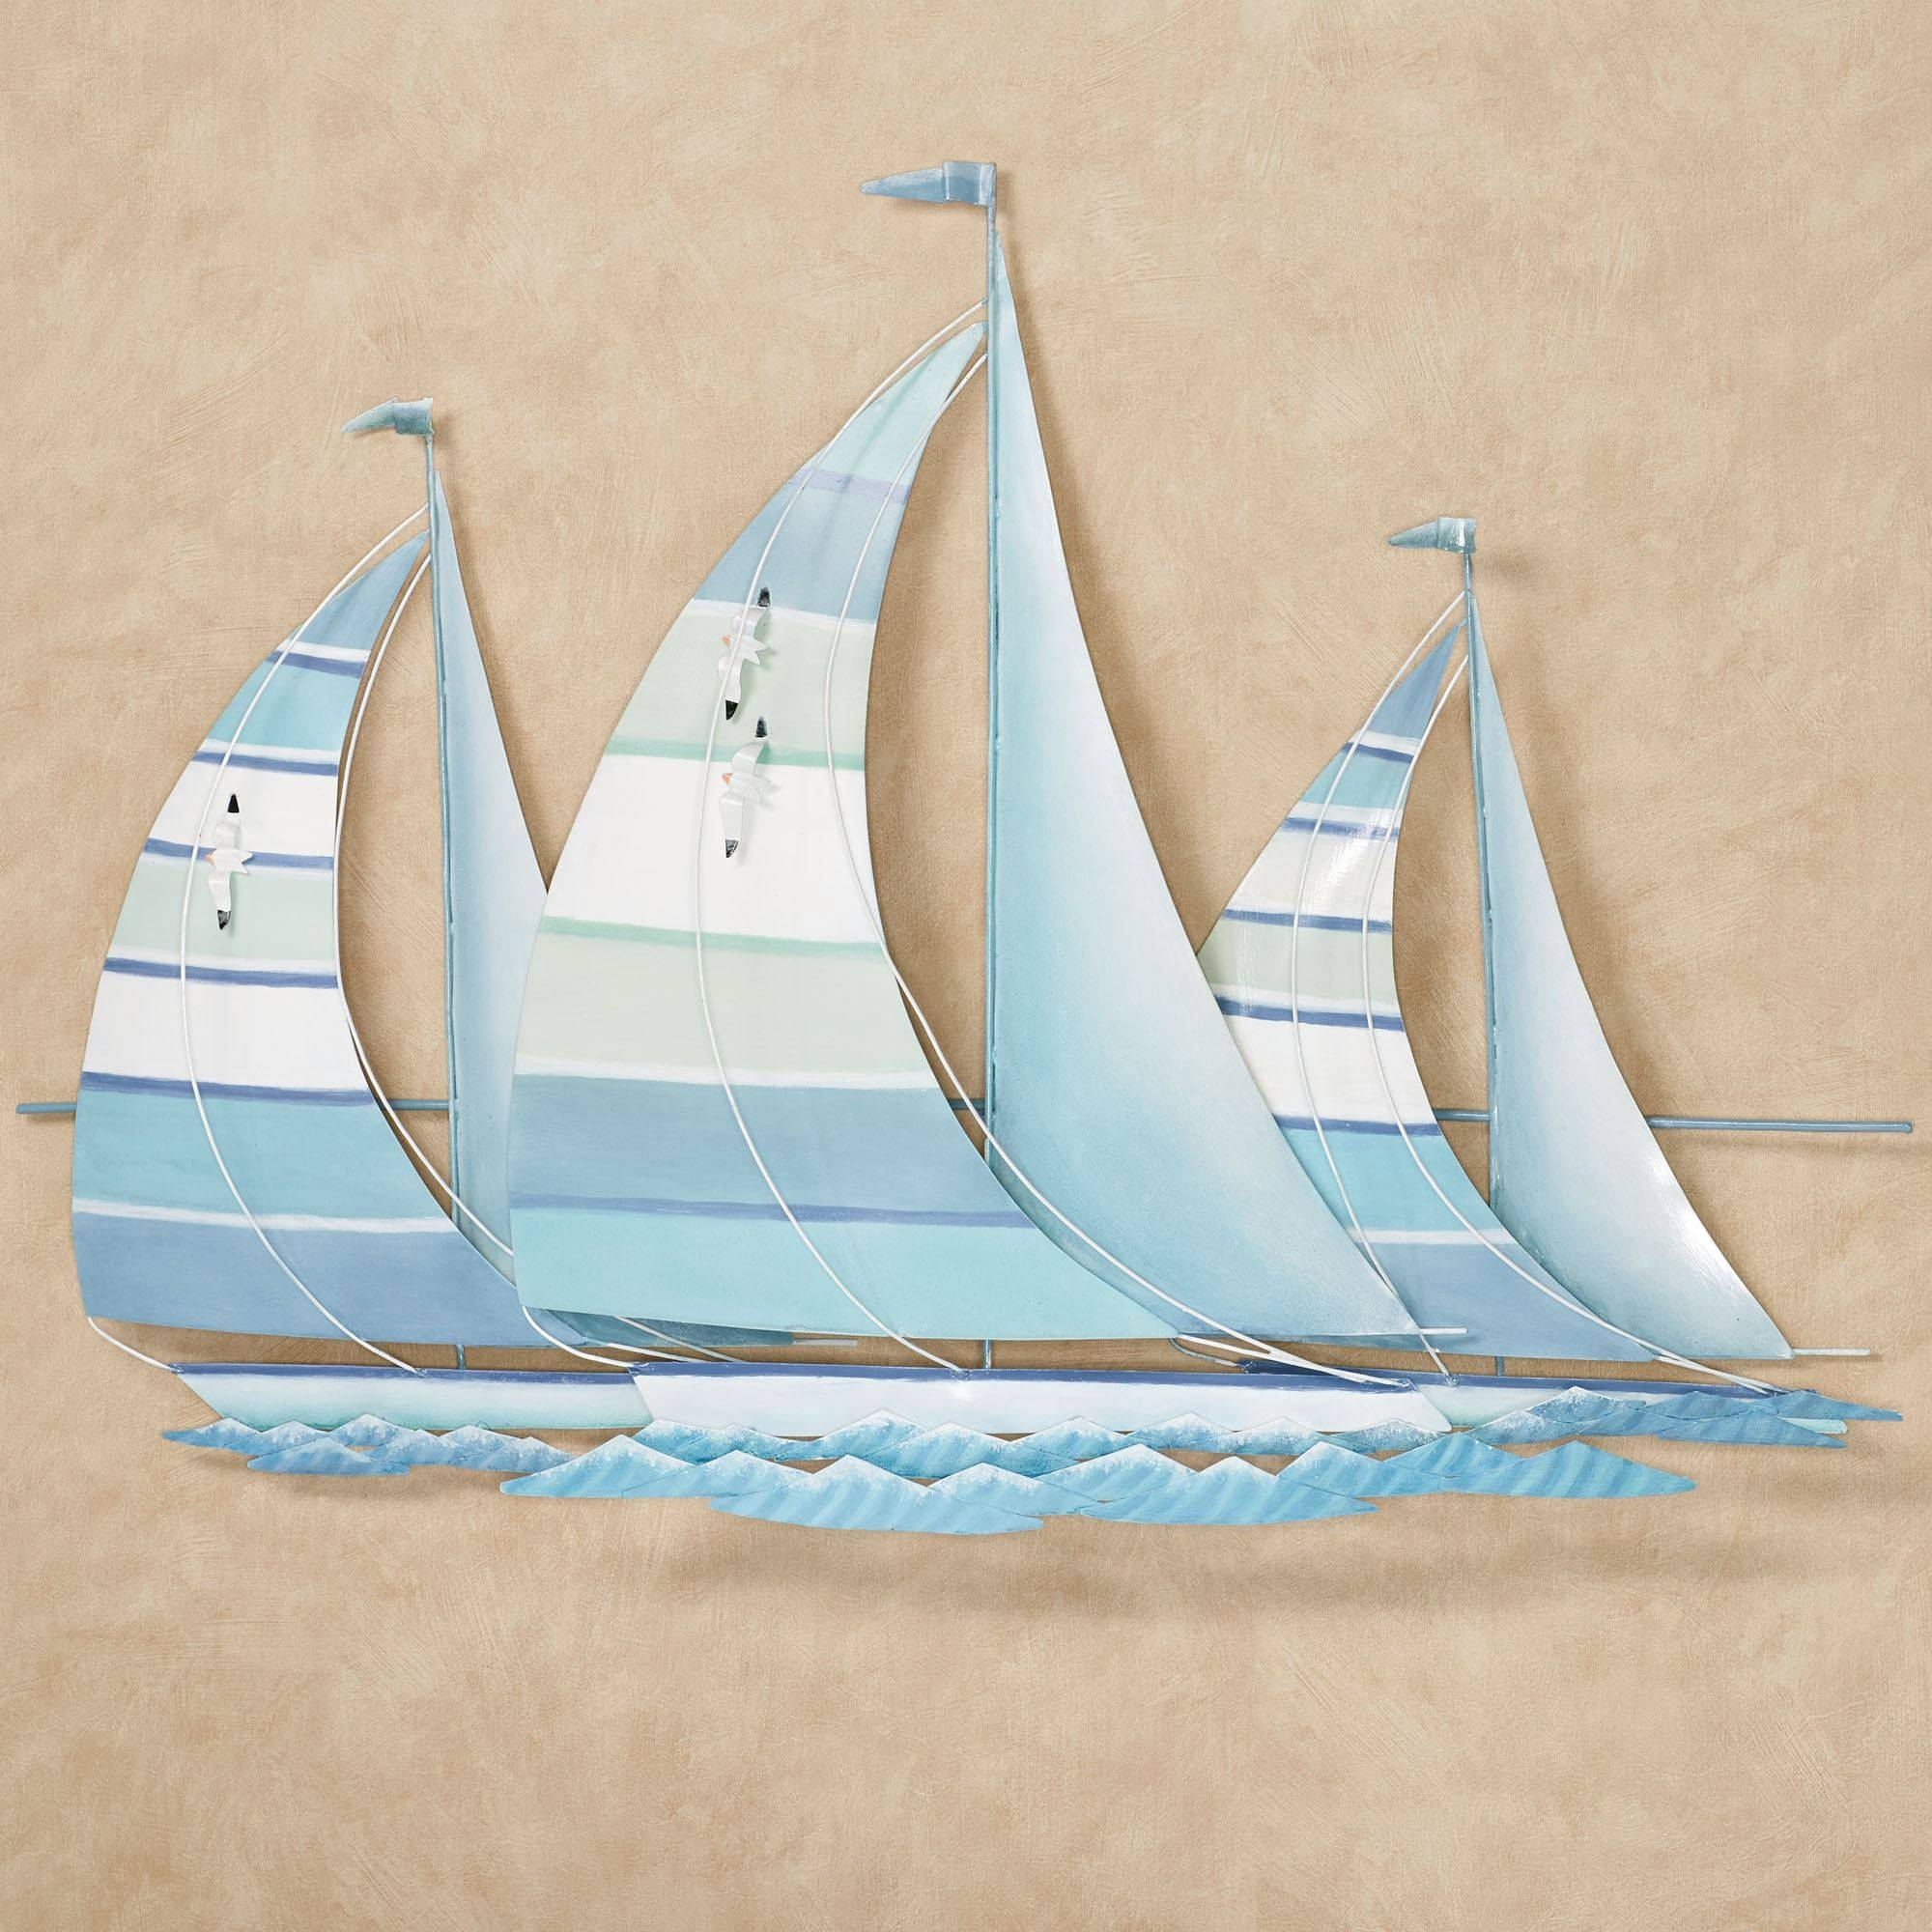 Regatta Finish Line Blue Green Metal Sailboat Wall Sculpture With 2018 Metal Sailboat Wall Art (View 19 of 30)